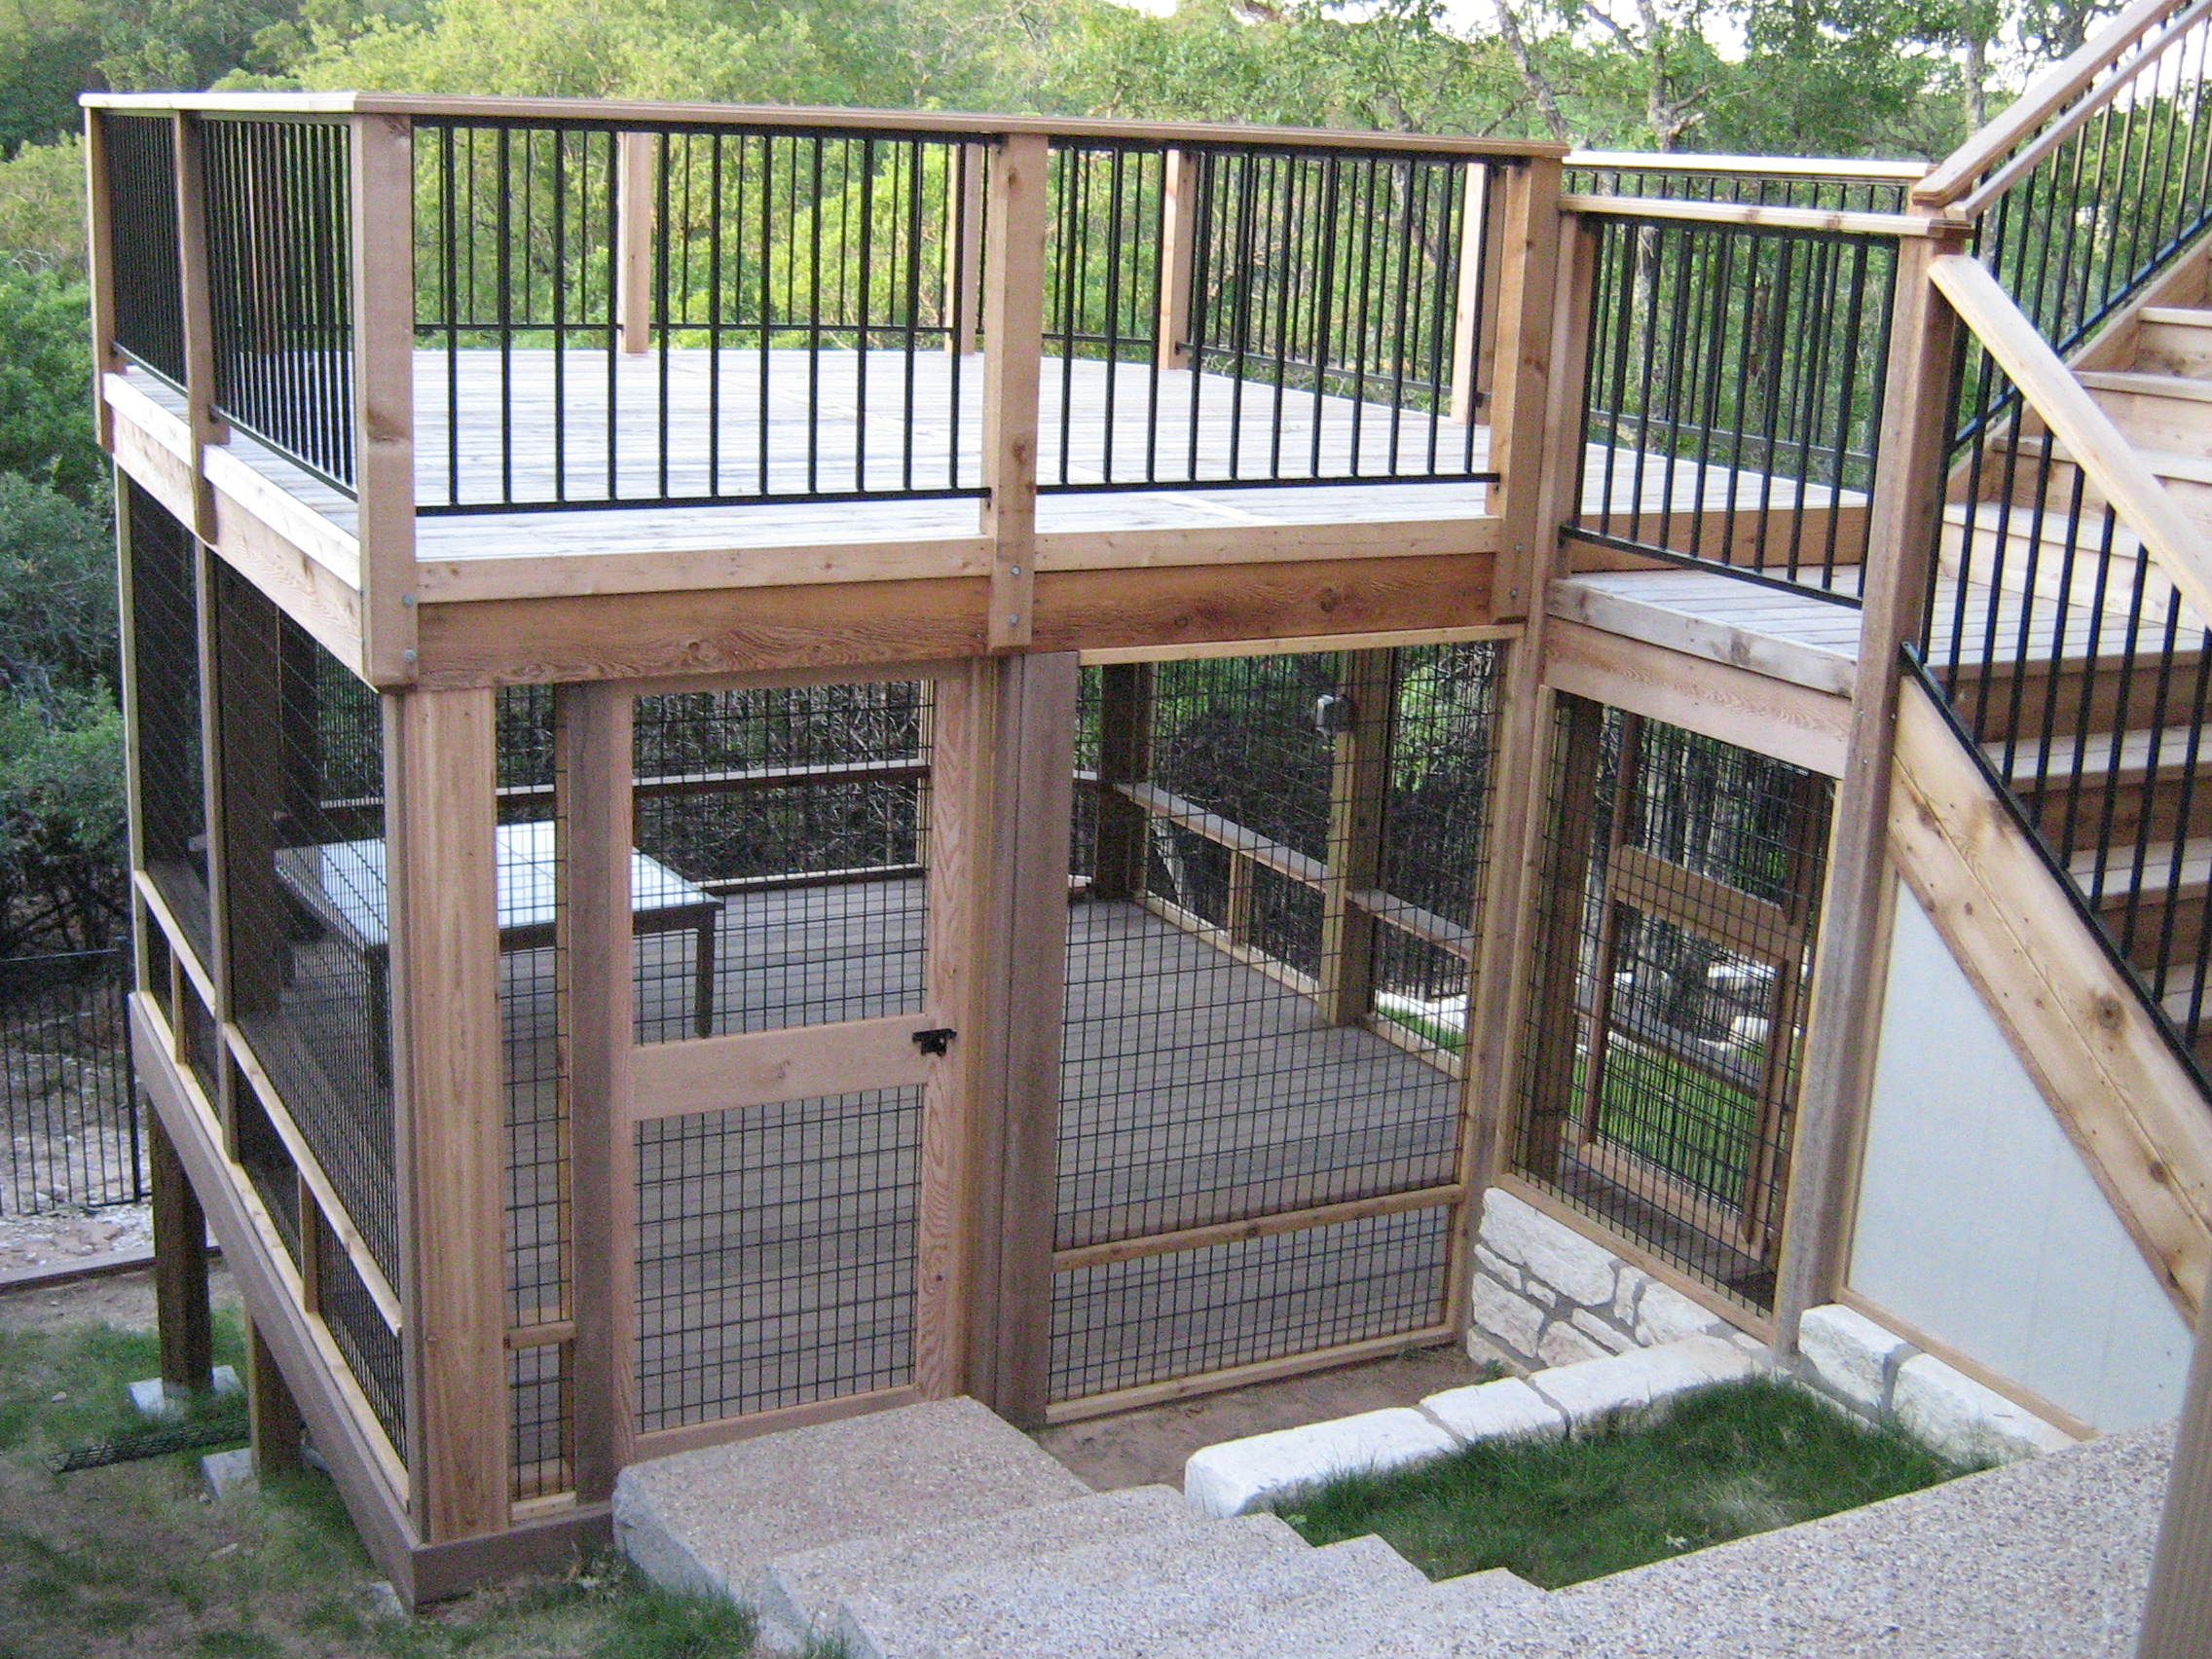 Picture 002 moreover Top Reasons Make Next Years Diy Project Carport moreover Rv Carport Garage Options Cost moreover Creative Uses also House Warming. on inexpensive carport designs